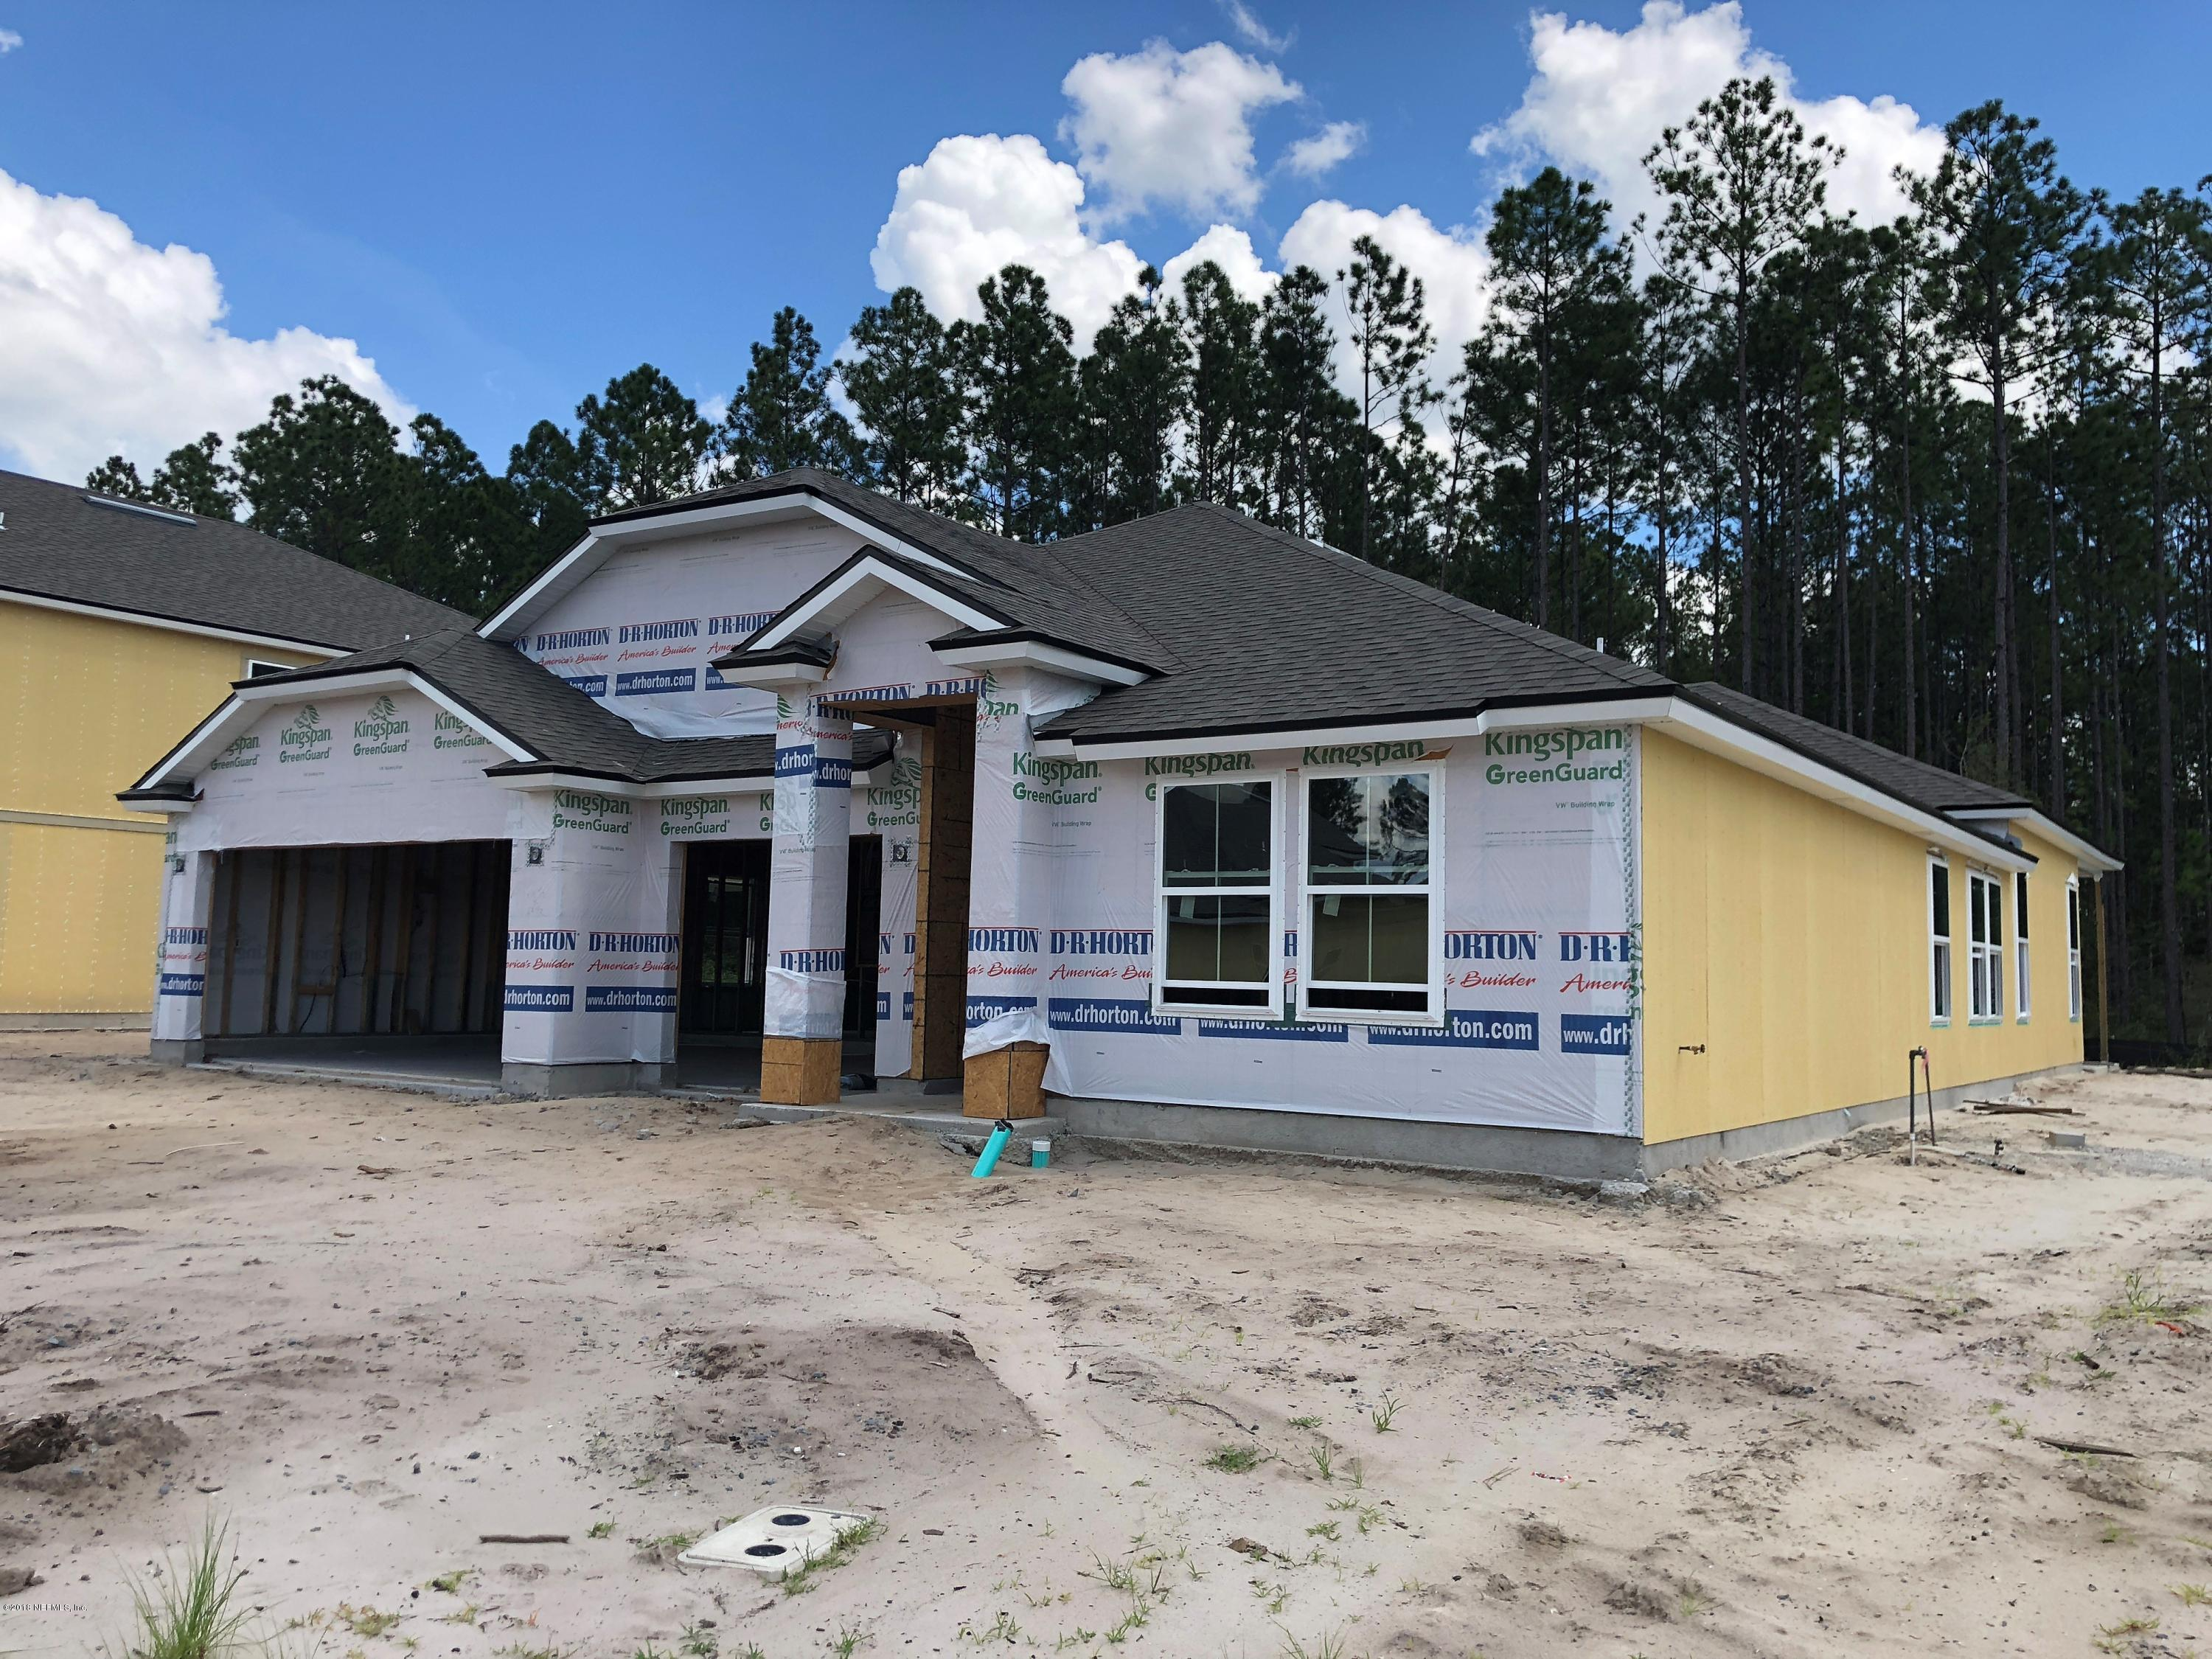 600 MELROSE ABBEY, ST JOHNS, FLORIDA 32259, 4 Bedrooms Bedrooms, ,3 BathroomsBathrooms,Residential - single family,For sale,MELROSE ABBEY,964882